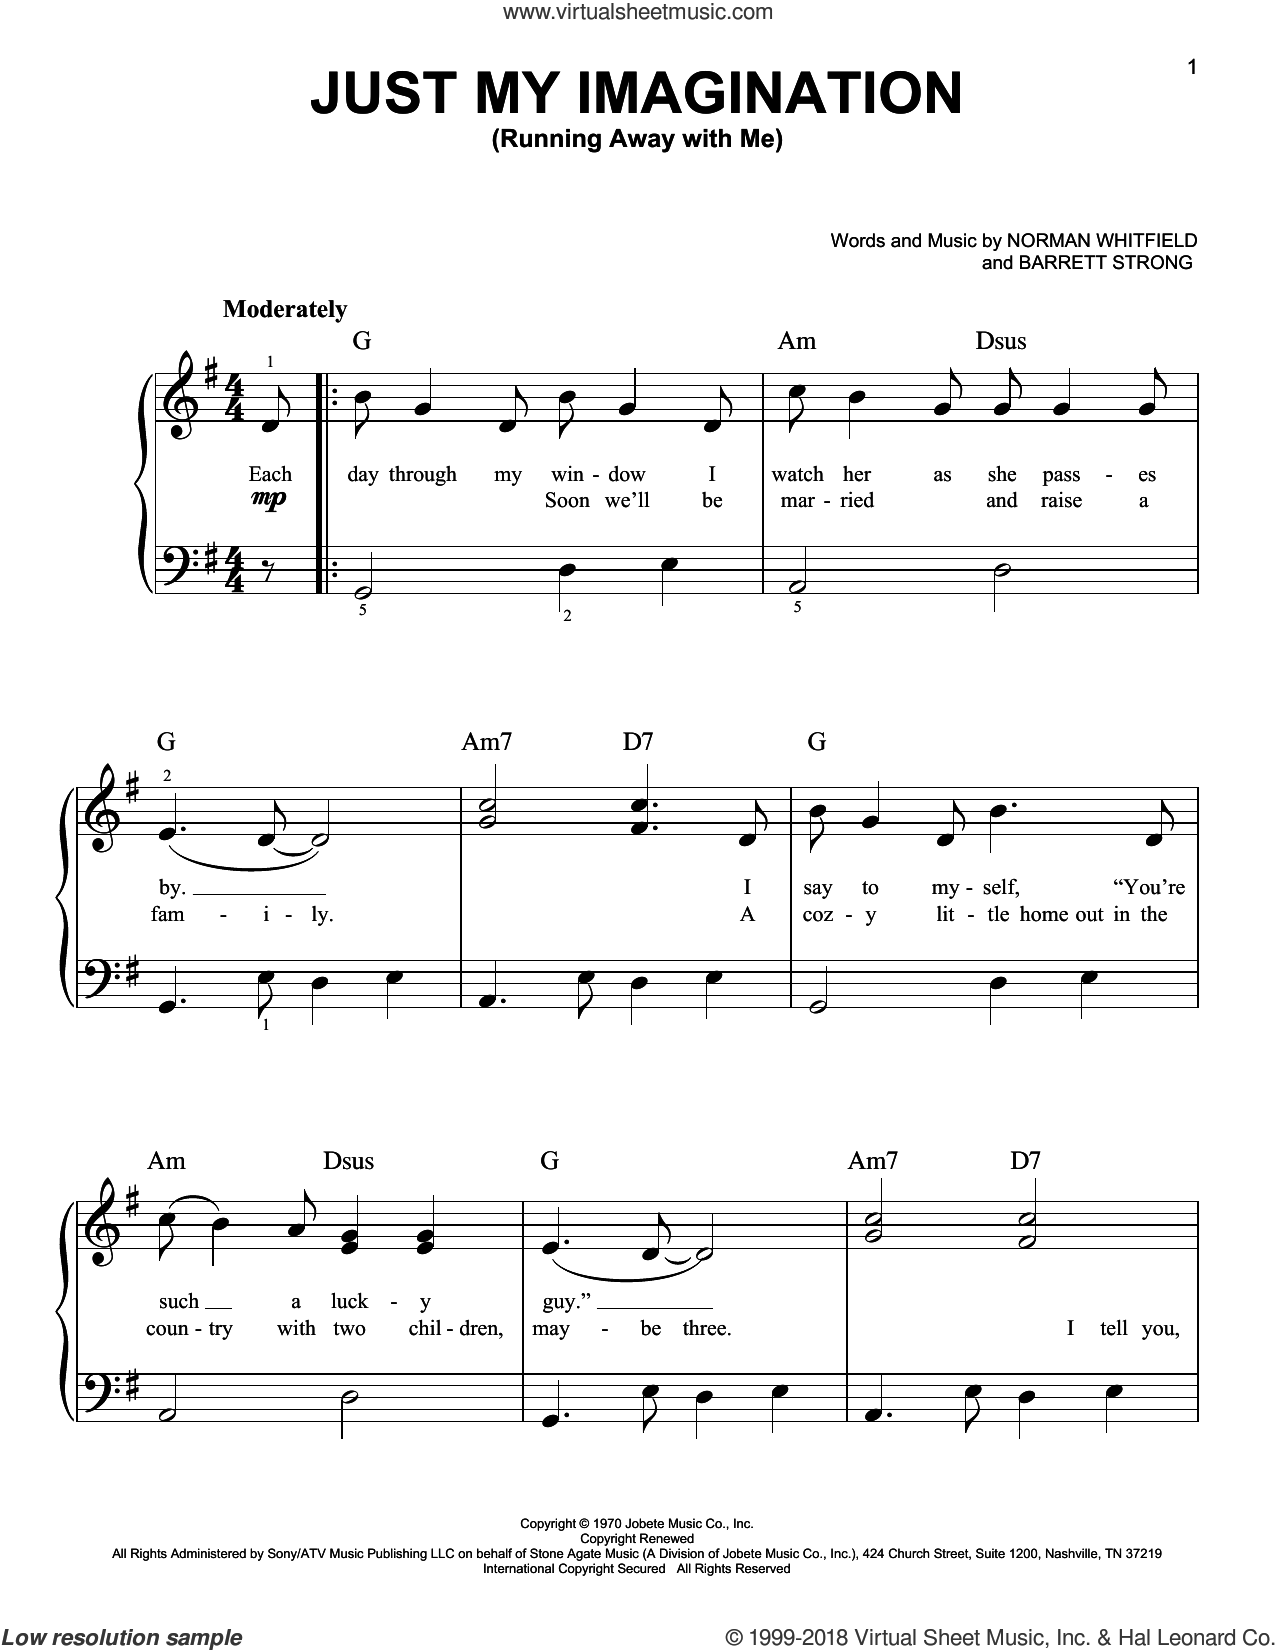 Just My Imagination (Running Away With Me) sheet music for piano solo by Norman Whitfield, The Temptations and Barrett Strong. Score Image Preview.